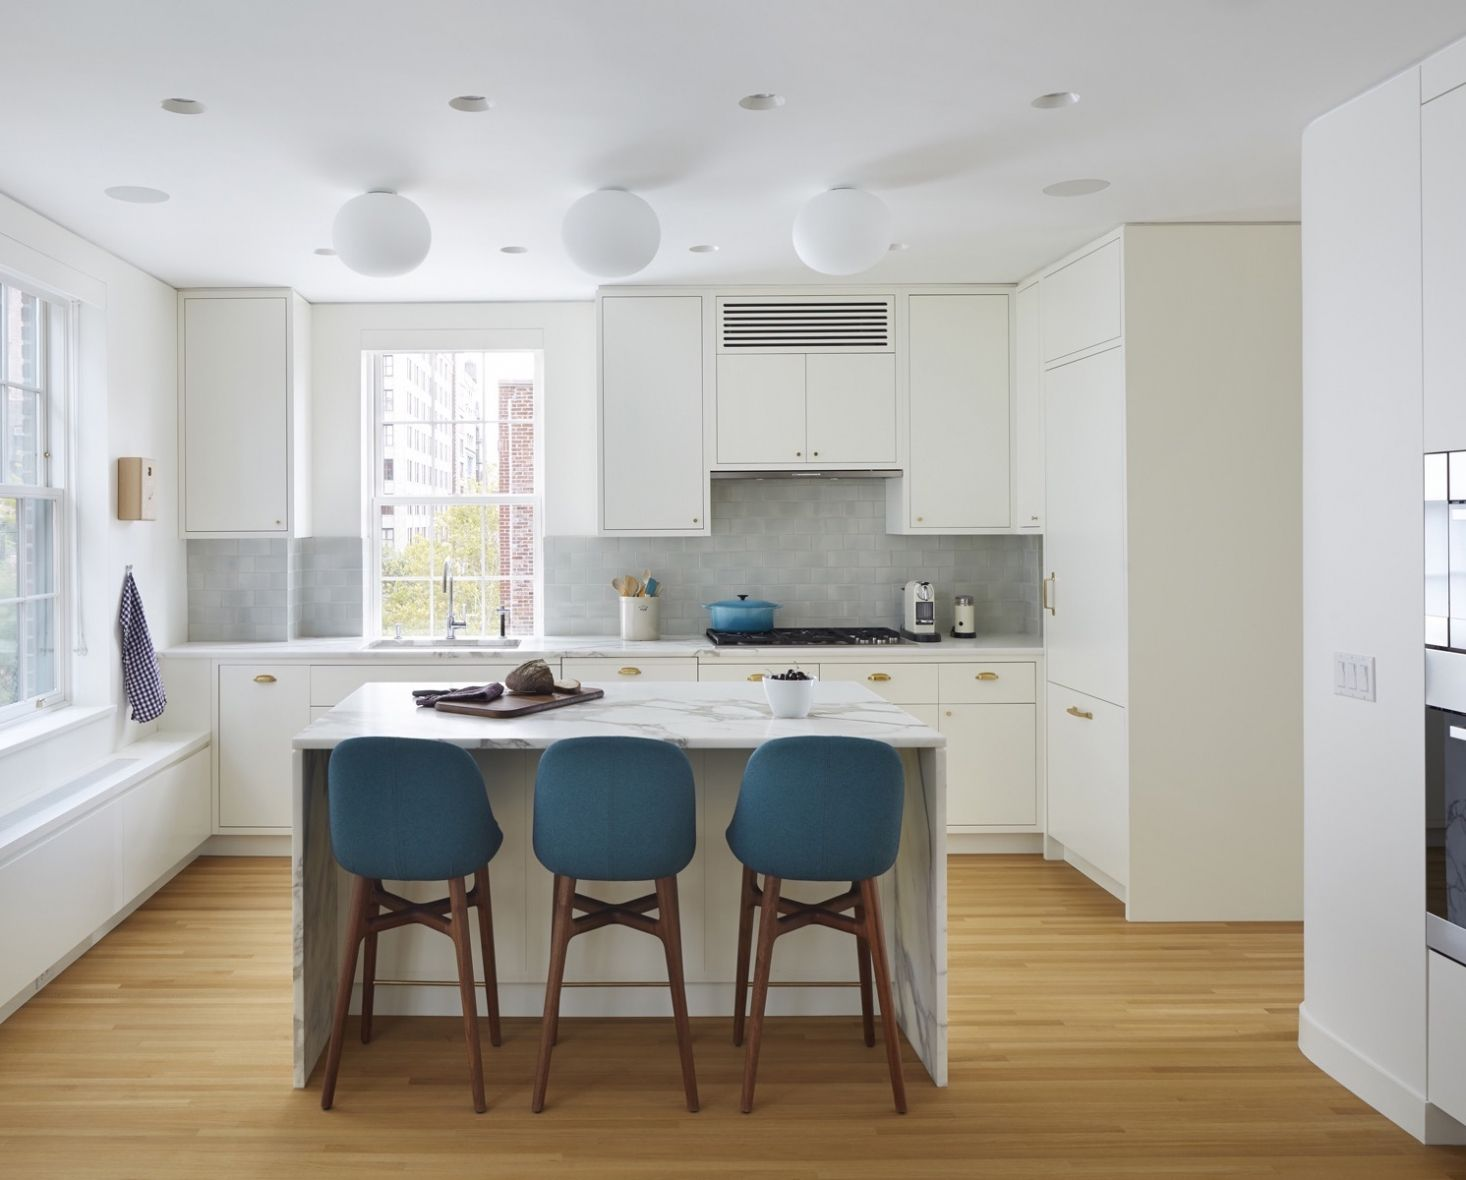 10 Easy Pieces Architects' White Paint Picks for Kitchen Cabinets - Kitchen design, Modern kitchen, Home kitchens, Kitchen decor, Best kitchen designs, Kitchen cabinets - The color of your kitchen cabinets will have a greater effect on the look of your kitchen than anything else  Here are 10 architectapproved white paints